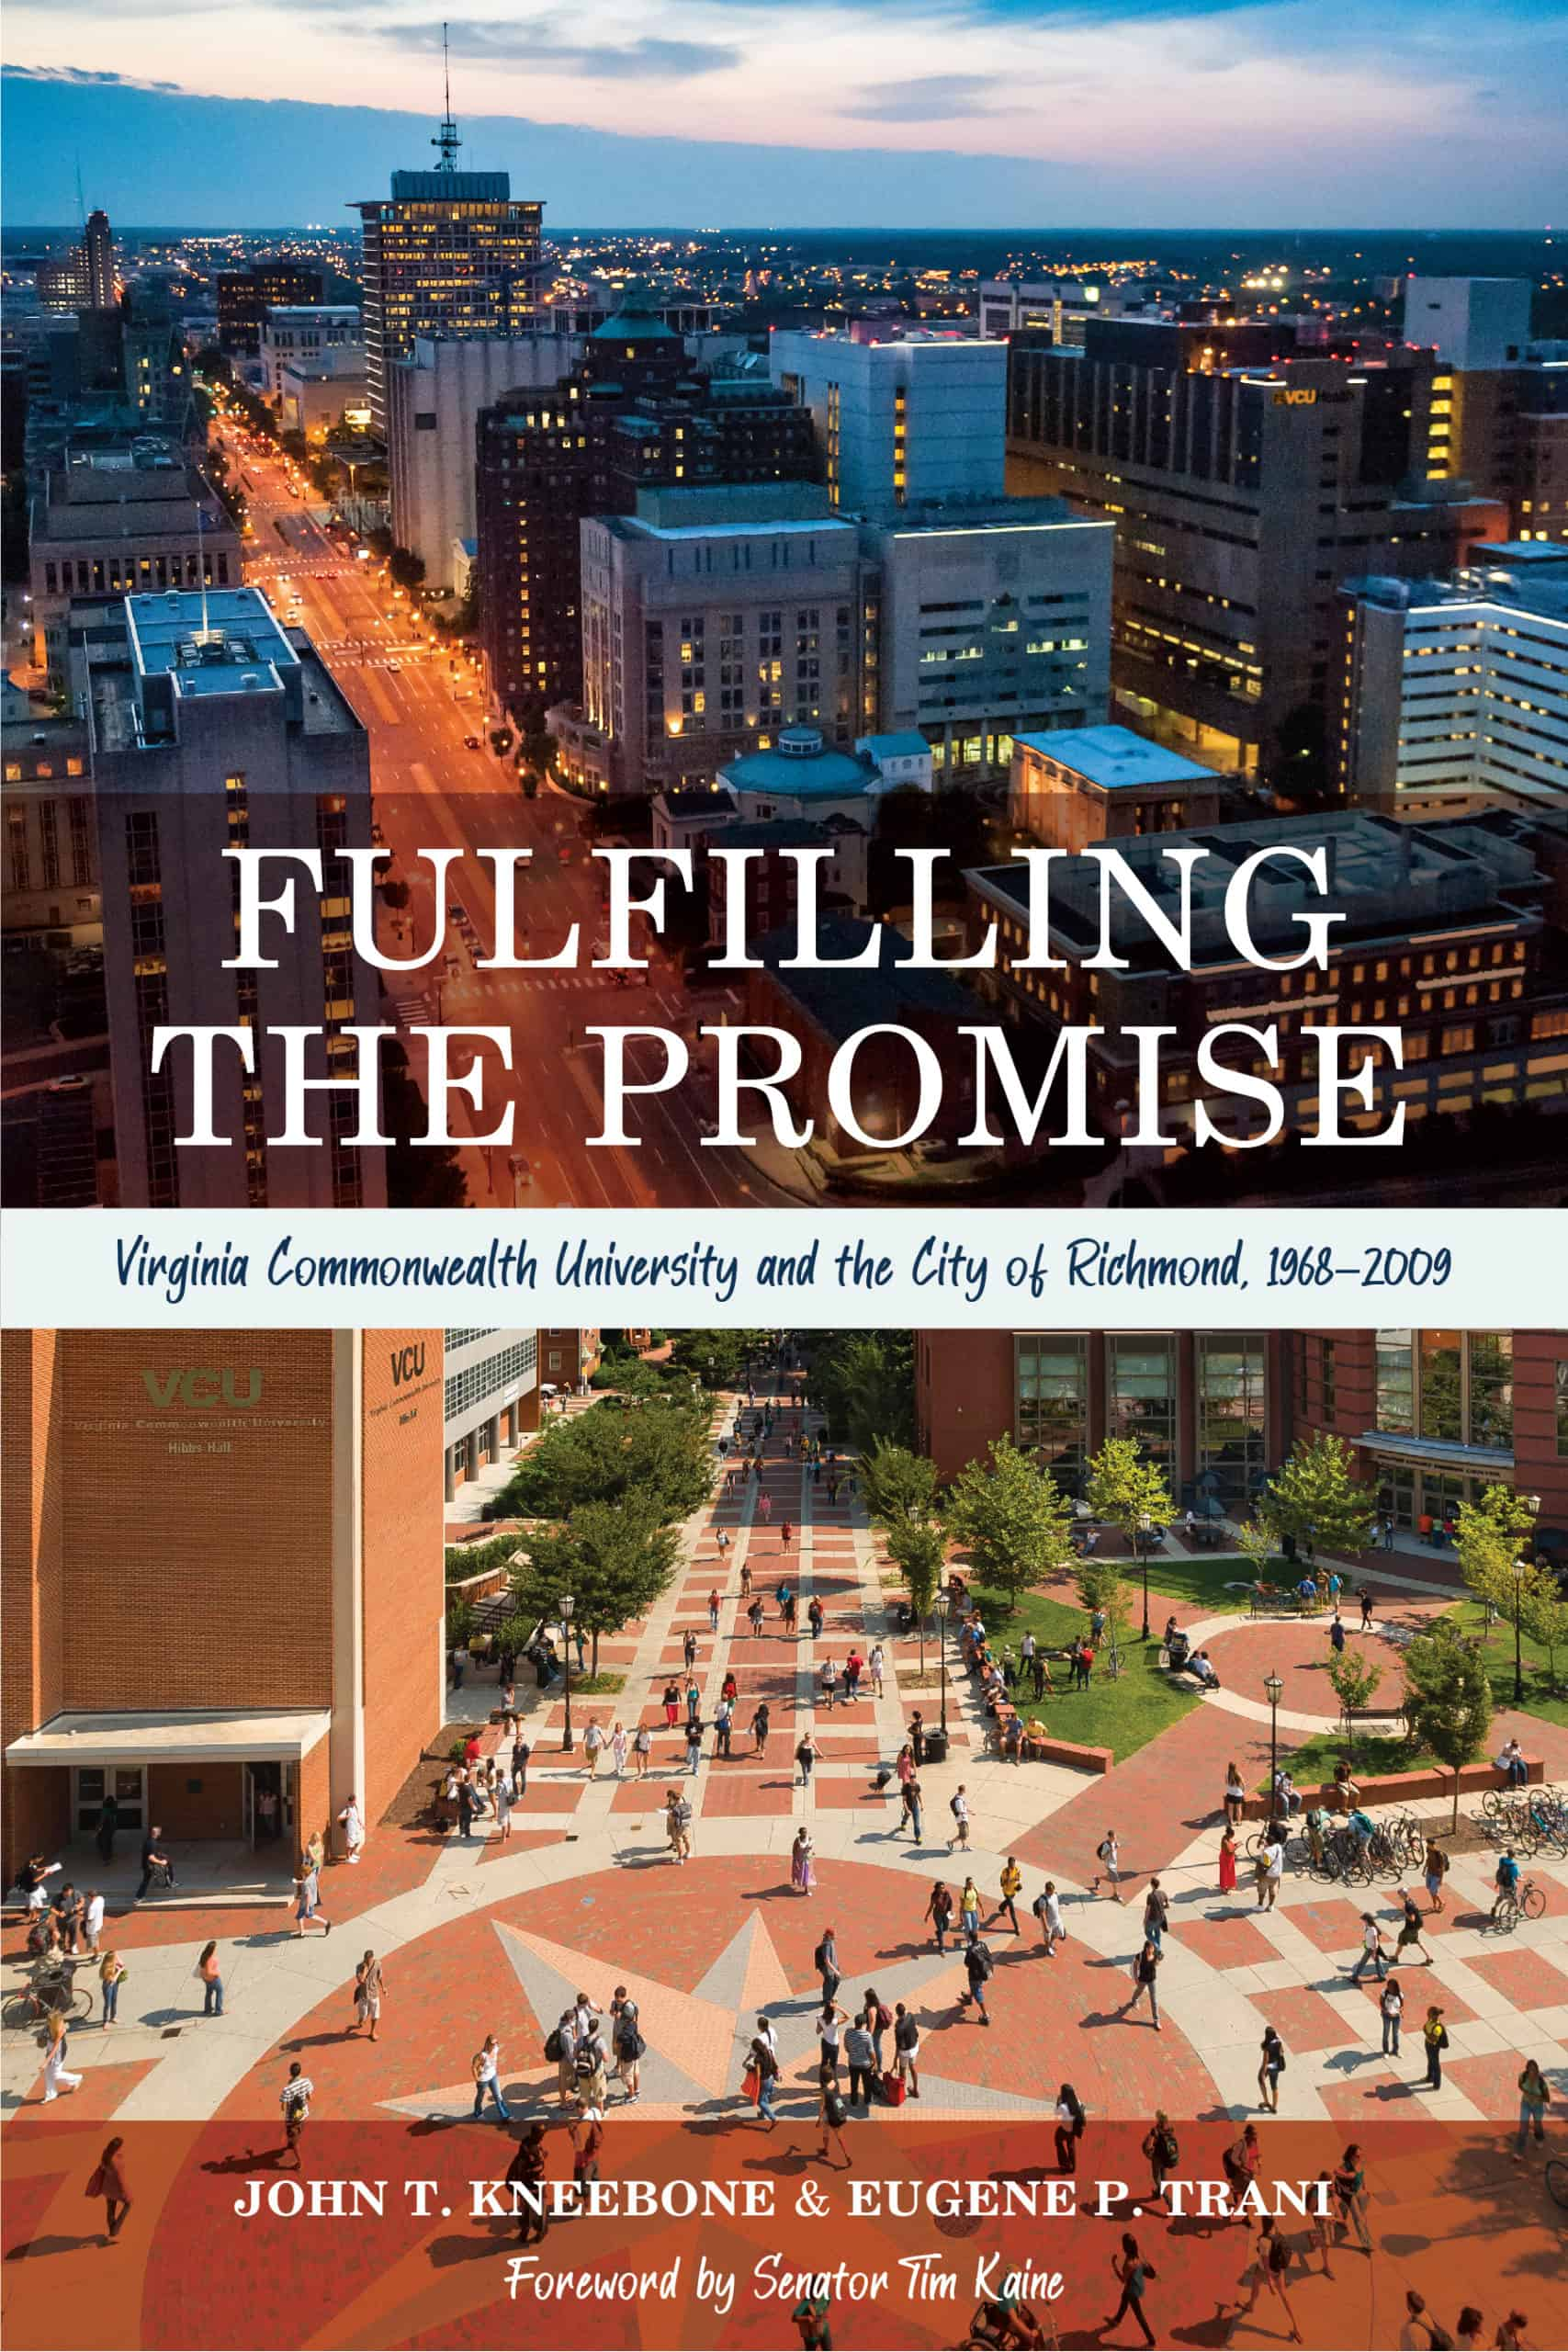 Fulfilling the Promise VCU Book Review - book cover